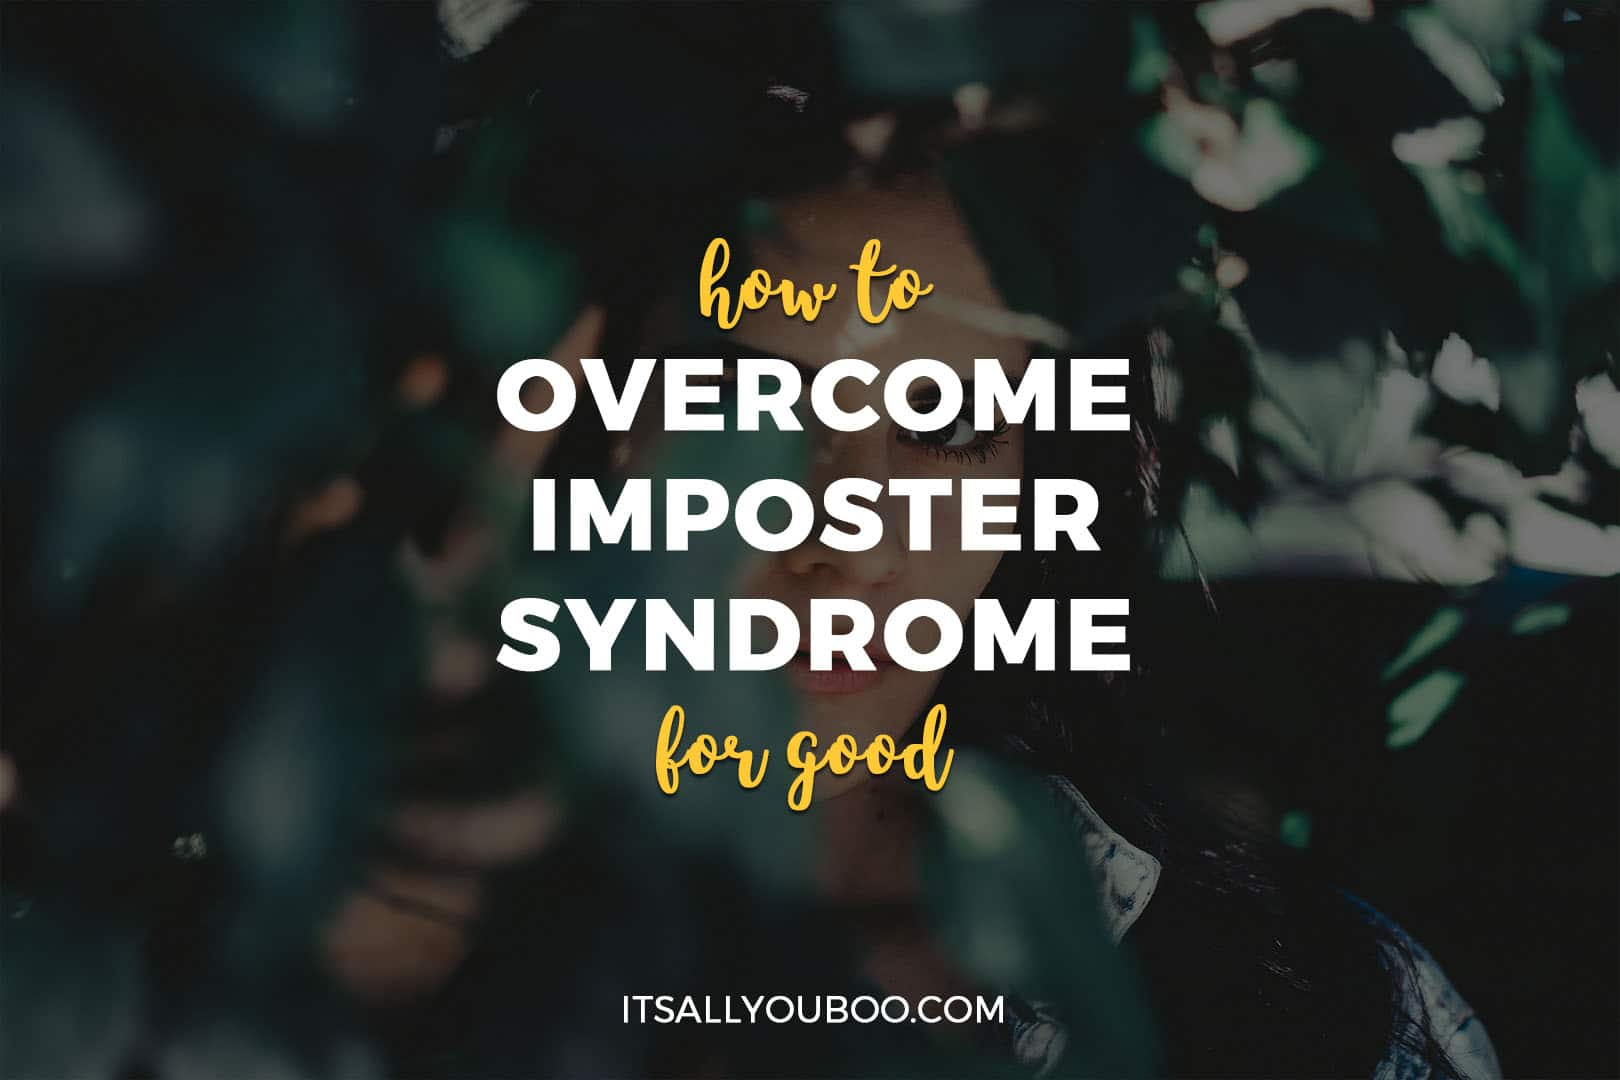 How to Overcome Imposter Syndrome for Good